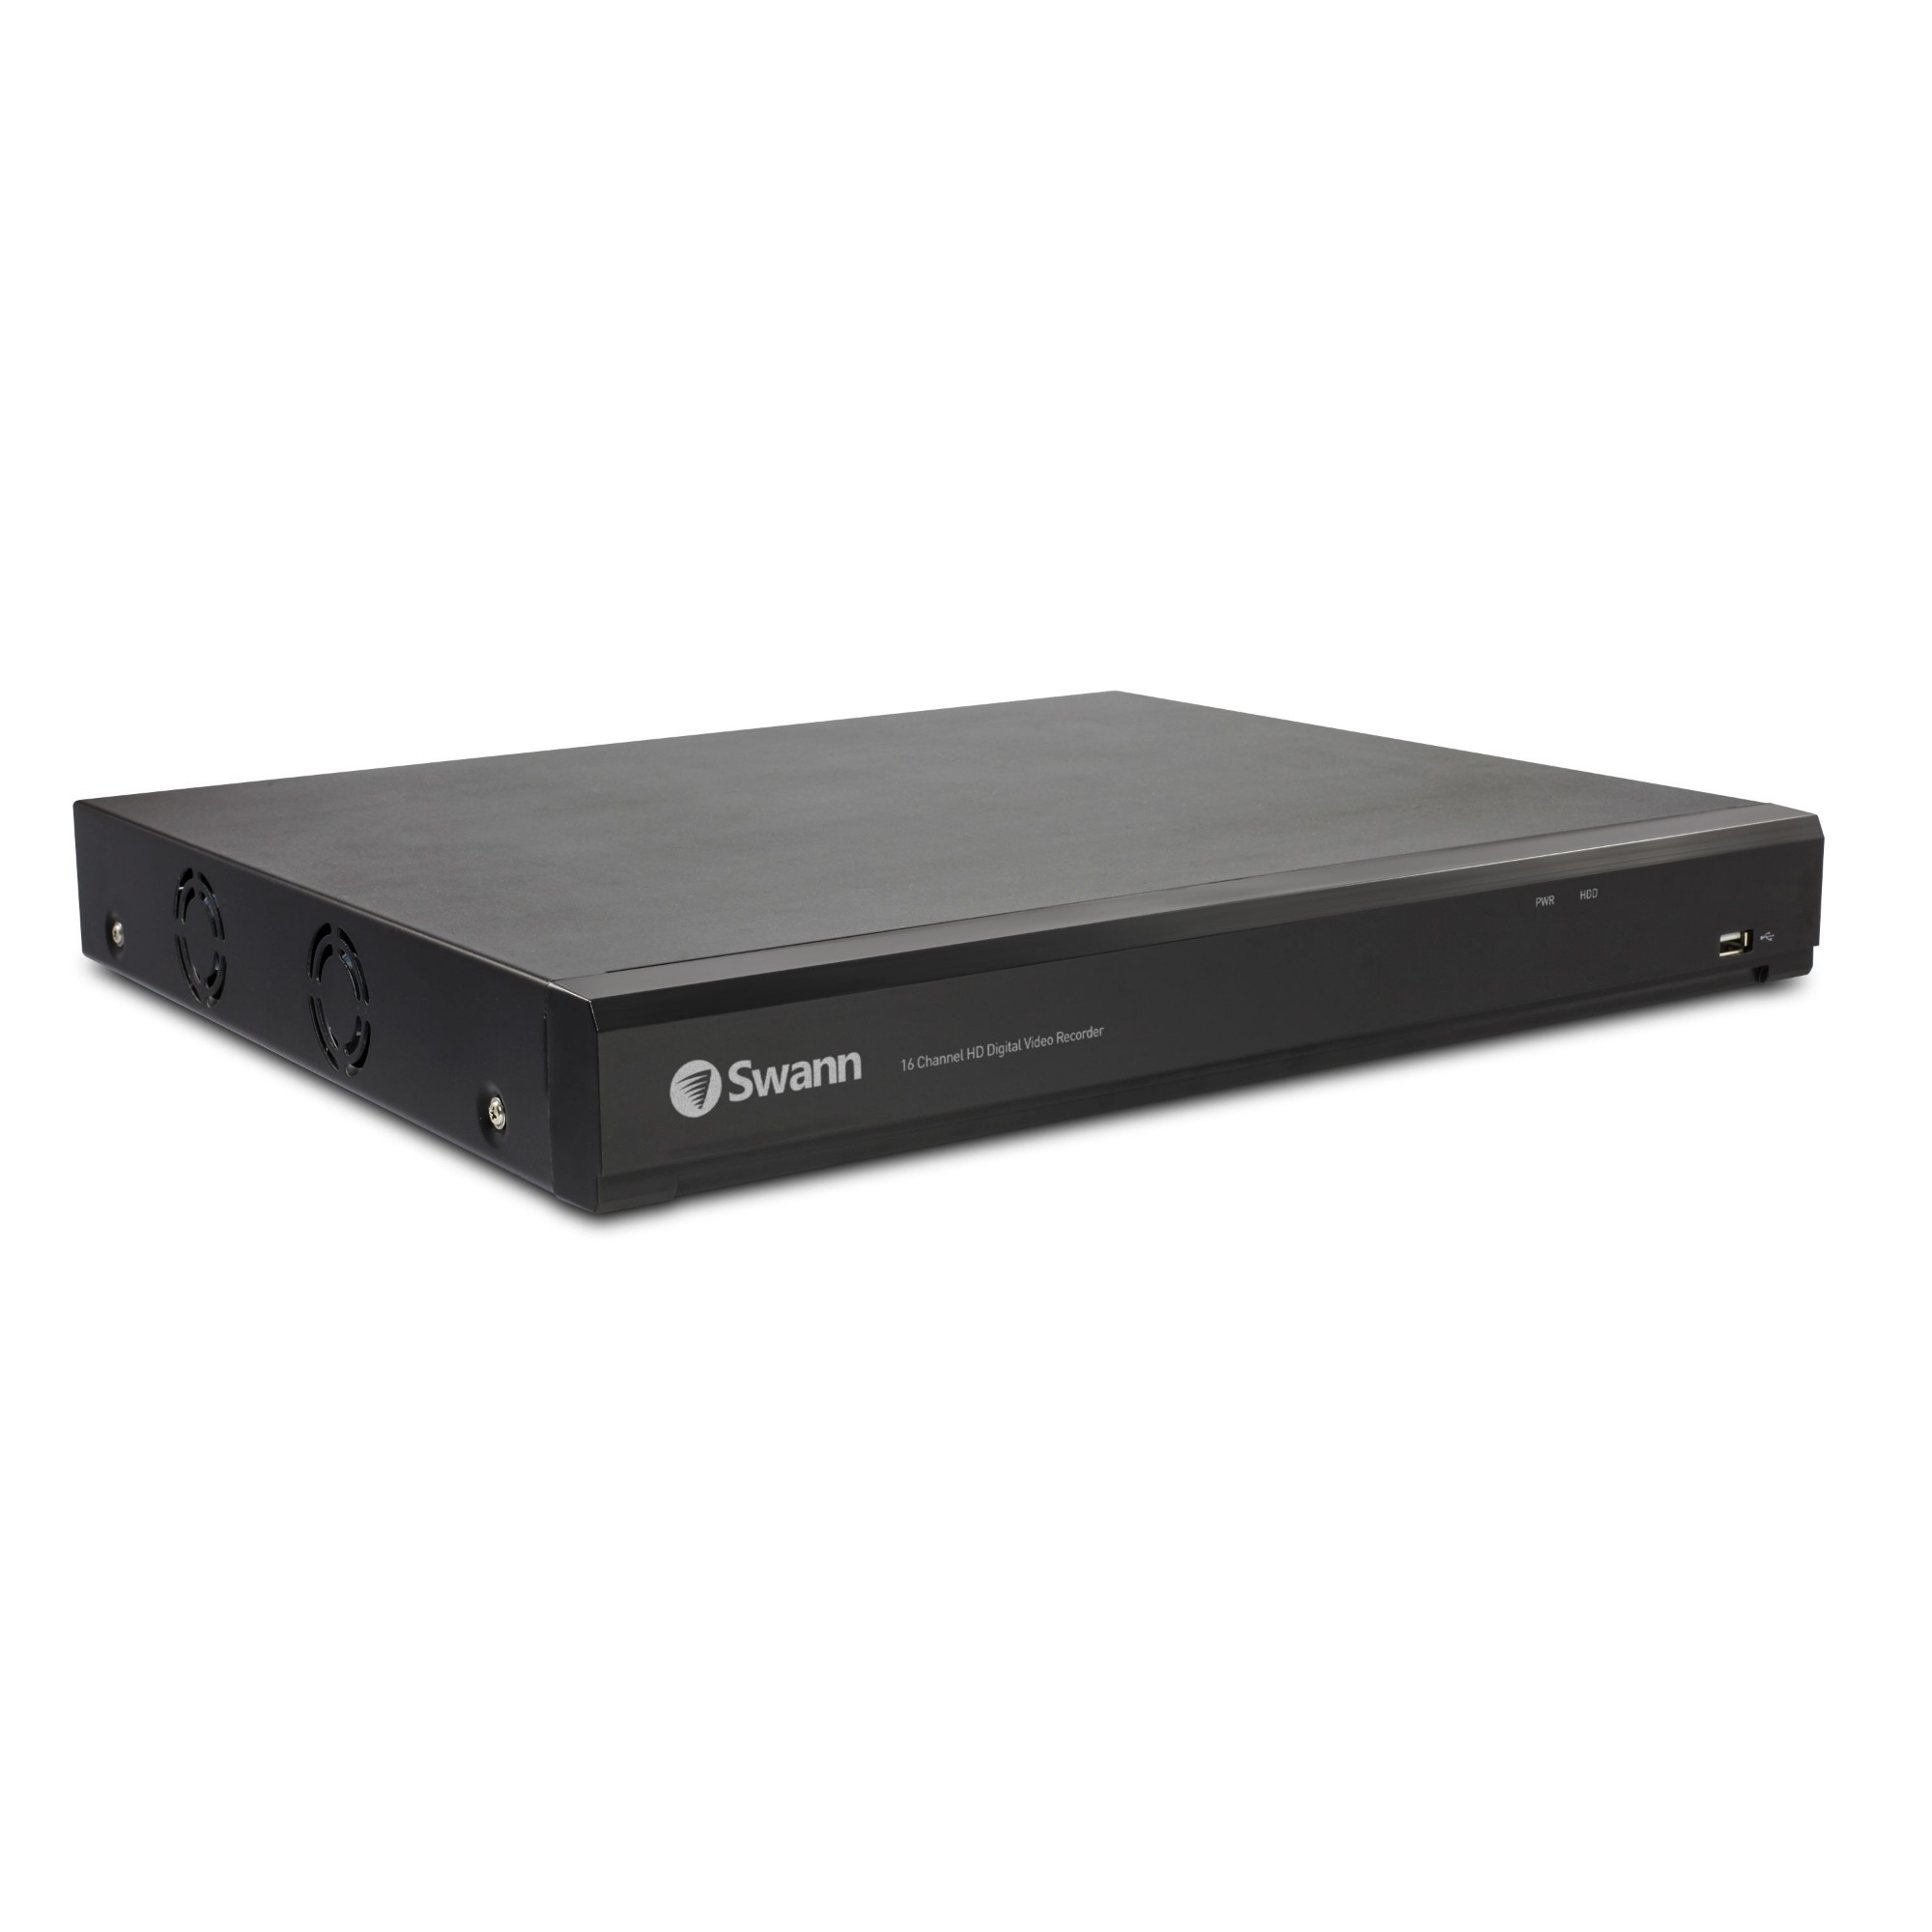 Swann 16 Channel 5MP Super HD DVR-4980 with 2TB HD With Google Assistant